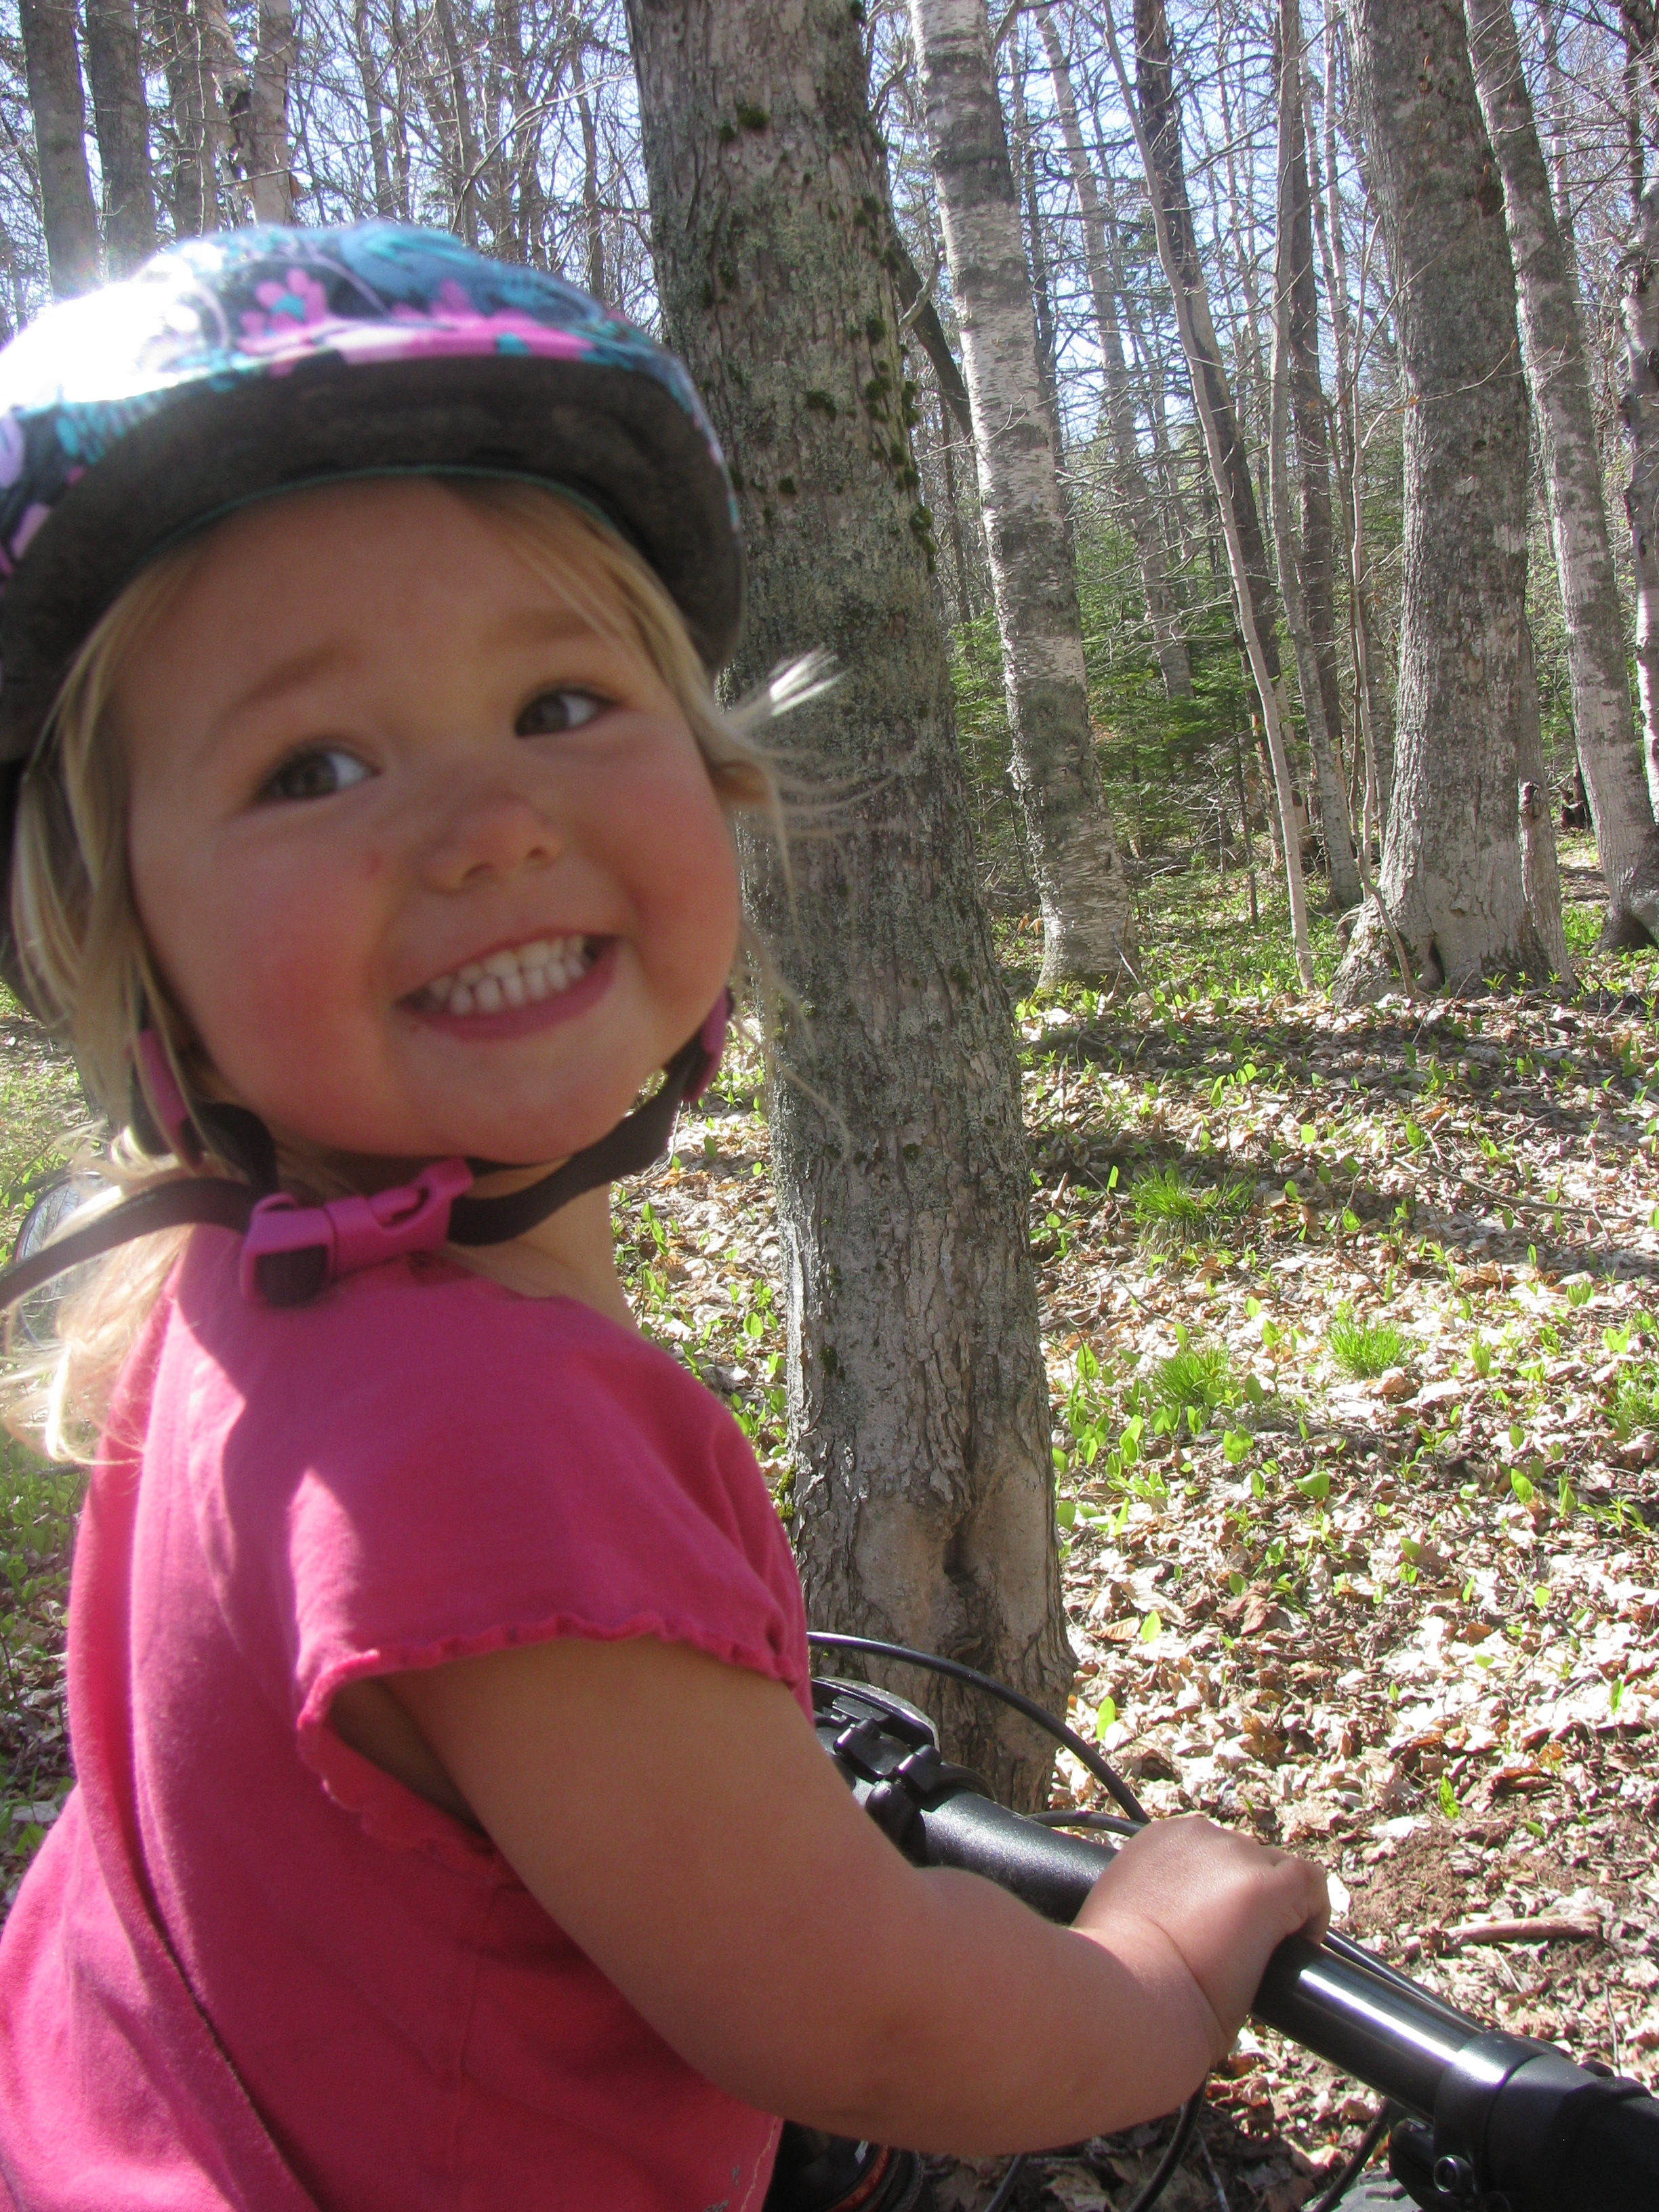 Riding the trails with mommy brings lots of smiles!